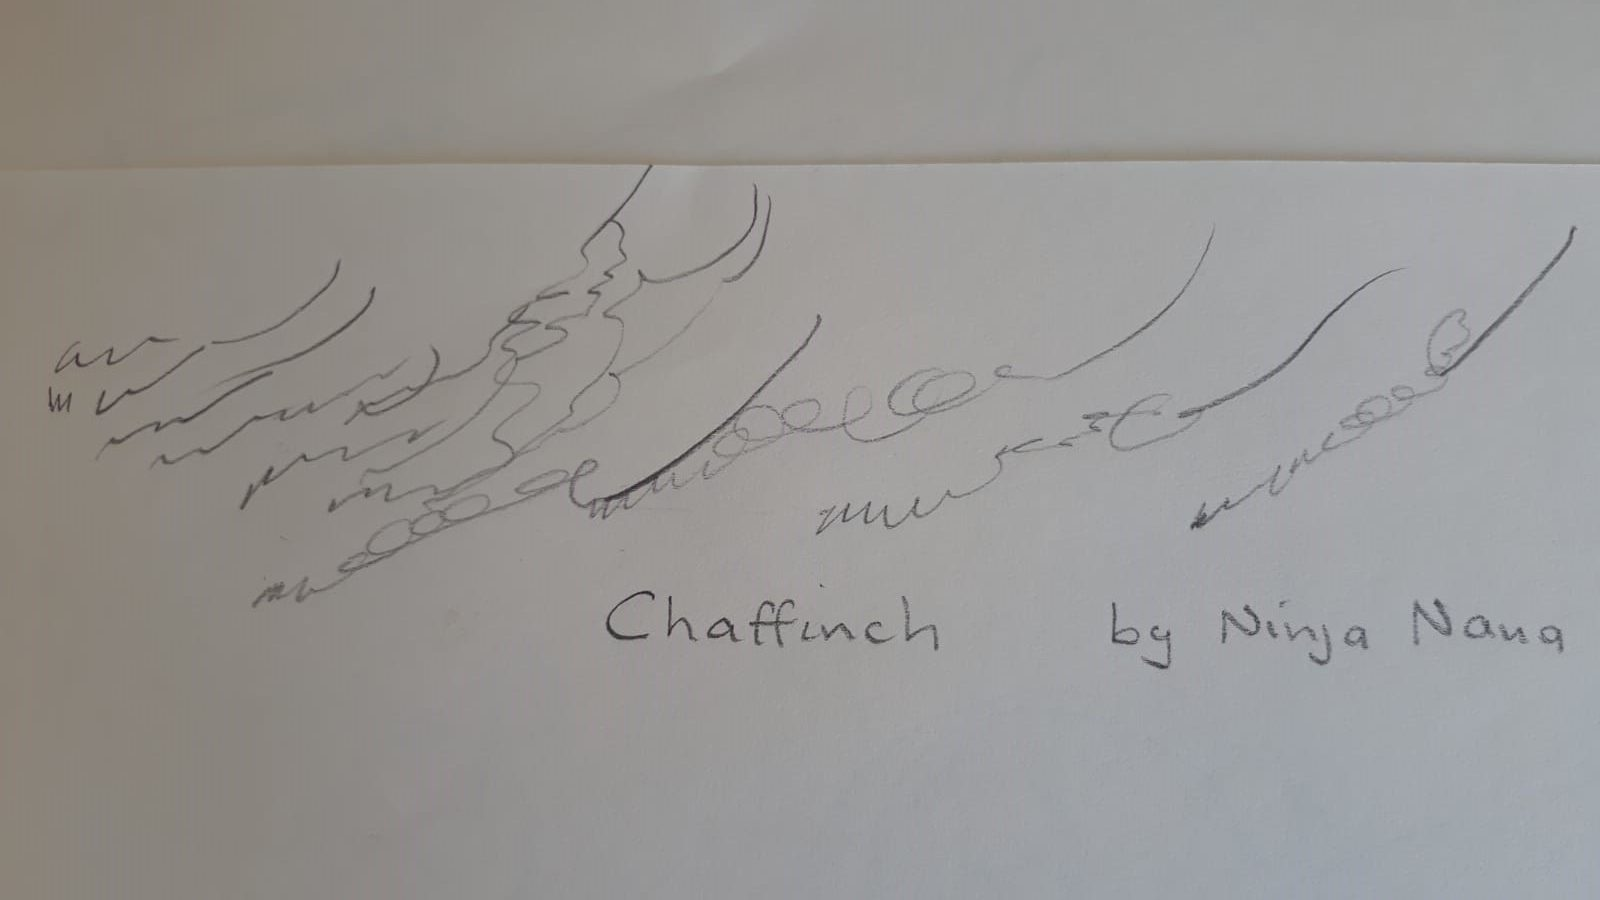 Drawing of a chaffinch's song